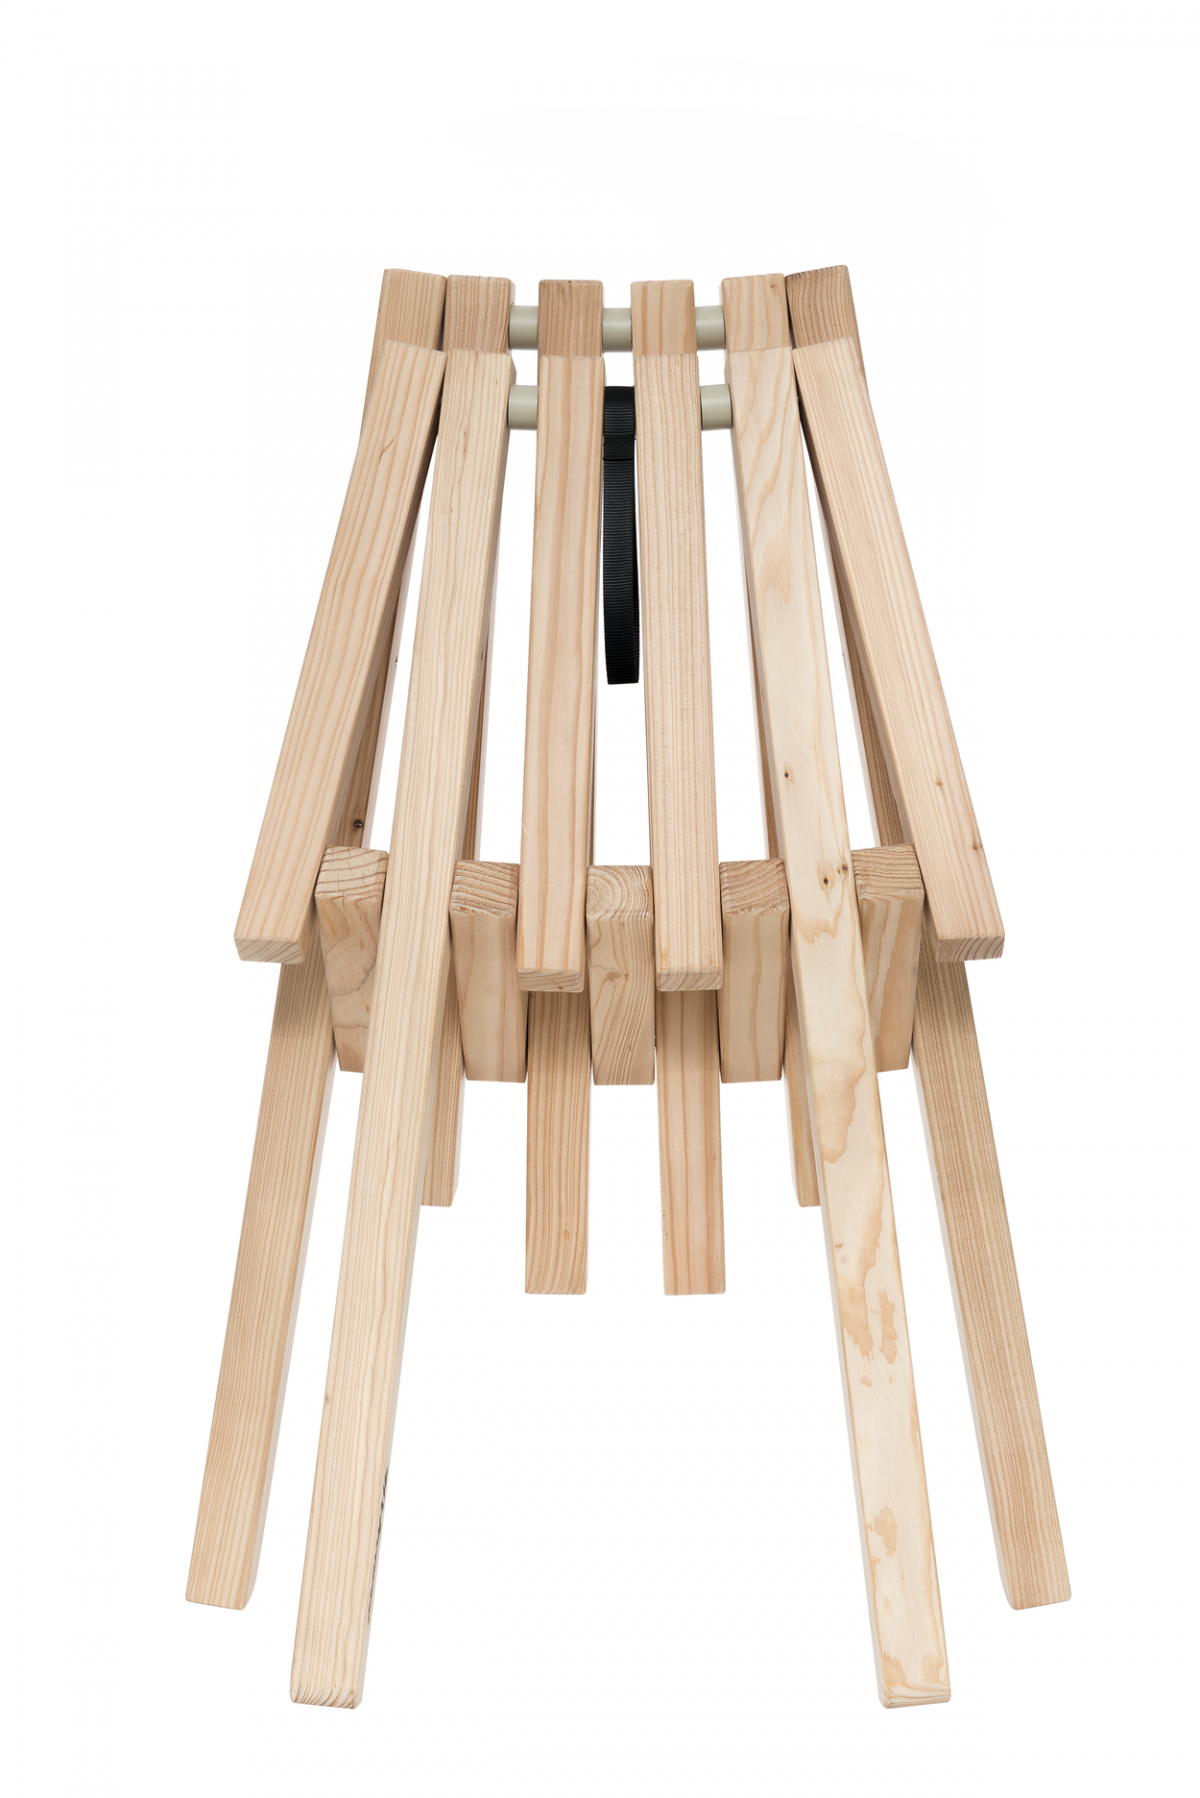 Fieldchair Welteveree Stoel Lariks Dutchdesign Outdoor Inklapbaar